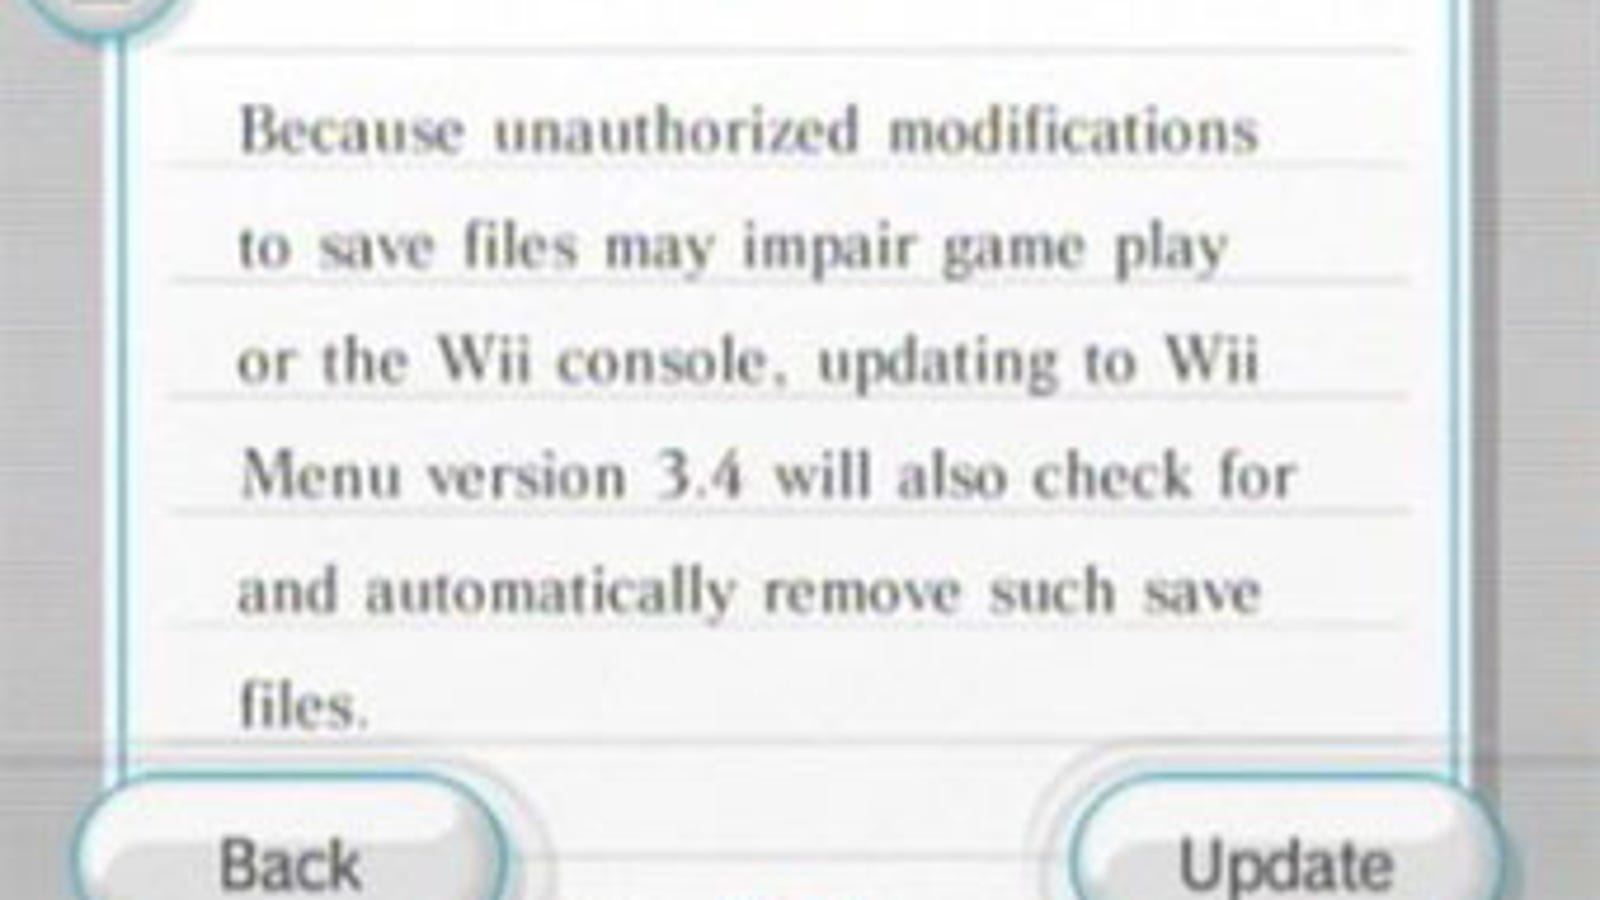 Latest Wii Update Will, As Usual, Attempt To Block The